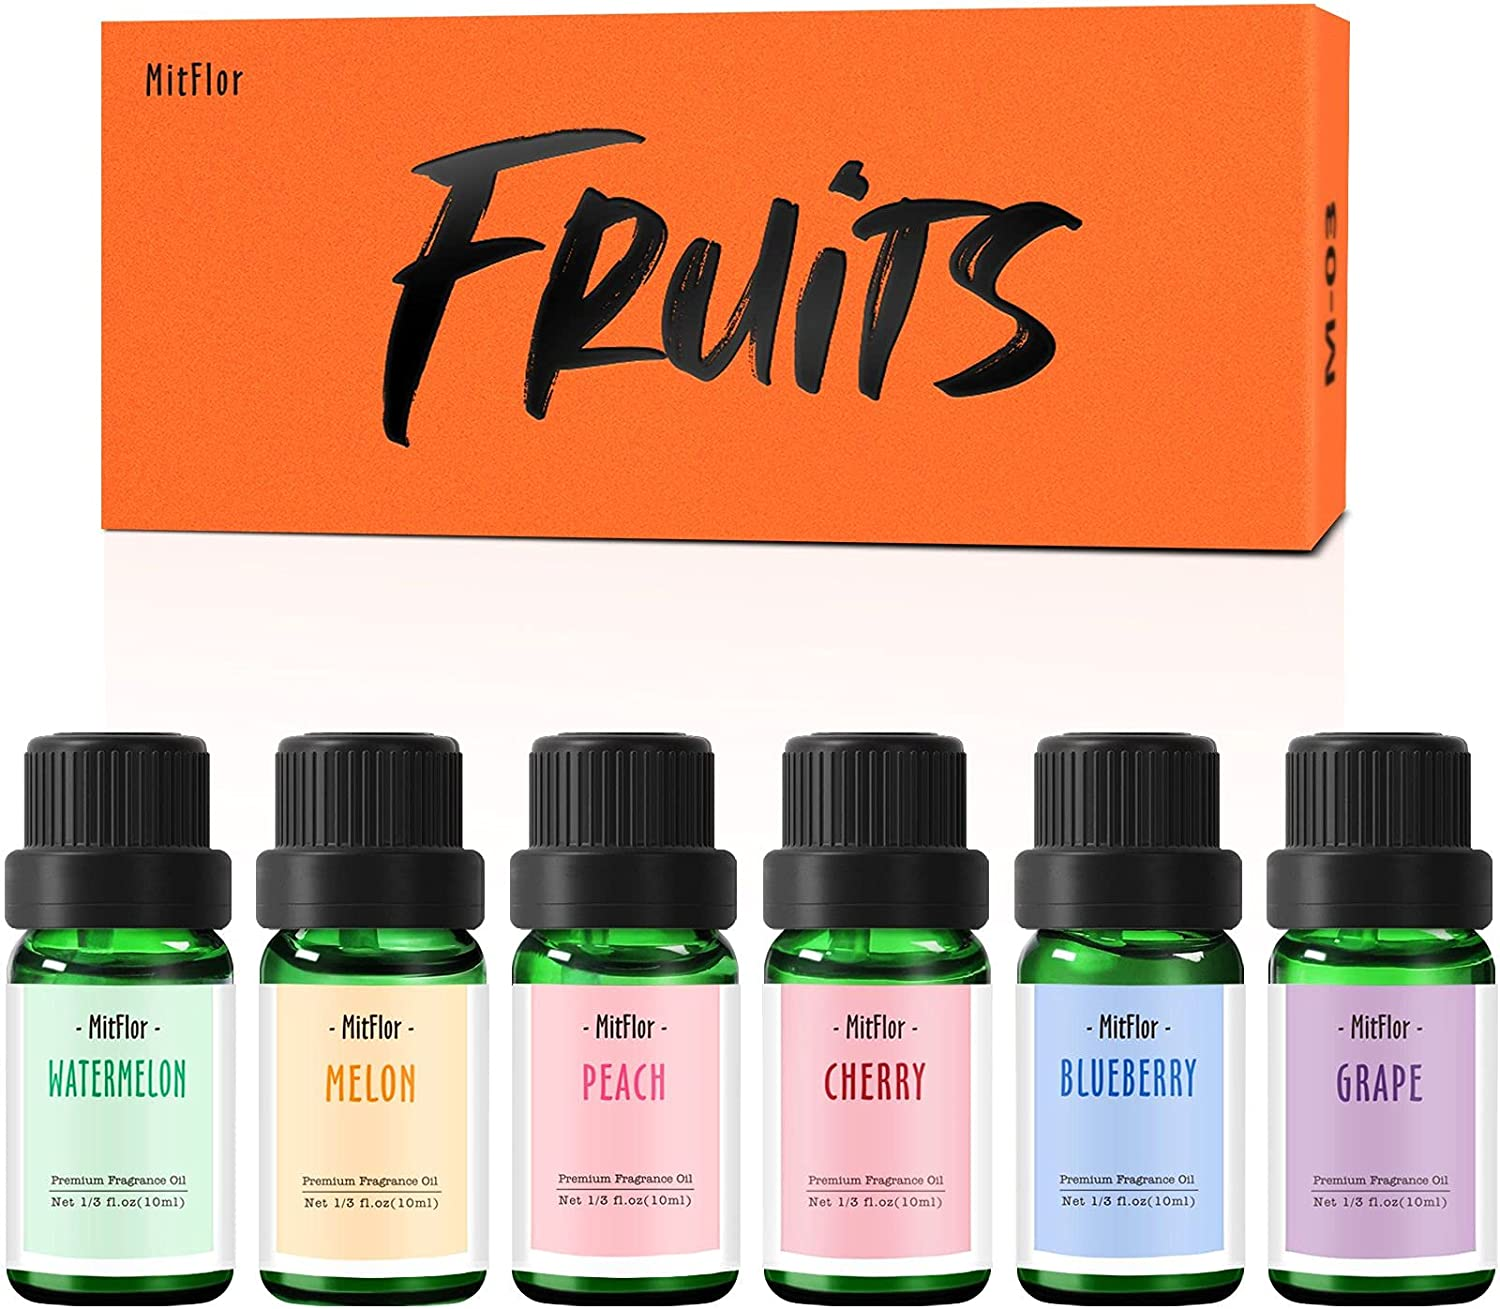 Fruity Fragrance Oils, MitFlor Premium Scented Oils, Fruit Essential Oils for Diffuser, Soap, Candle Making, Peach, Cherry, Watermelon, Blueberry, Grape, Melon, Summer Aromatherapy Oils Gift Kit